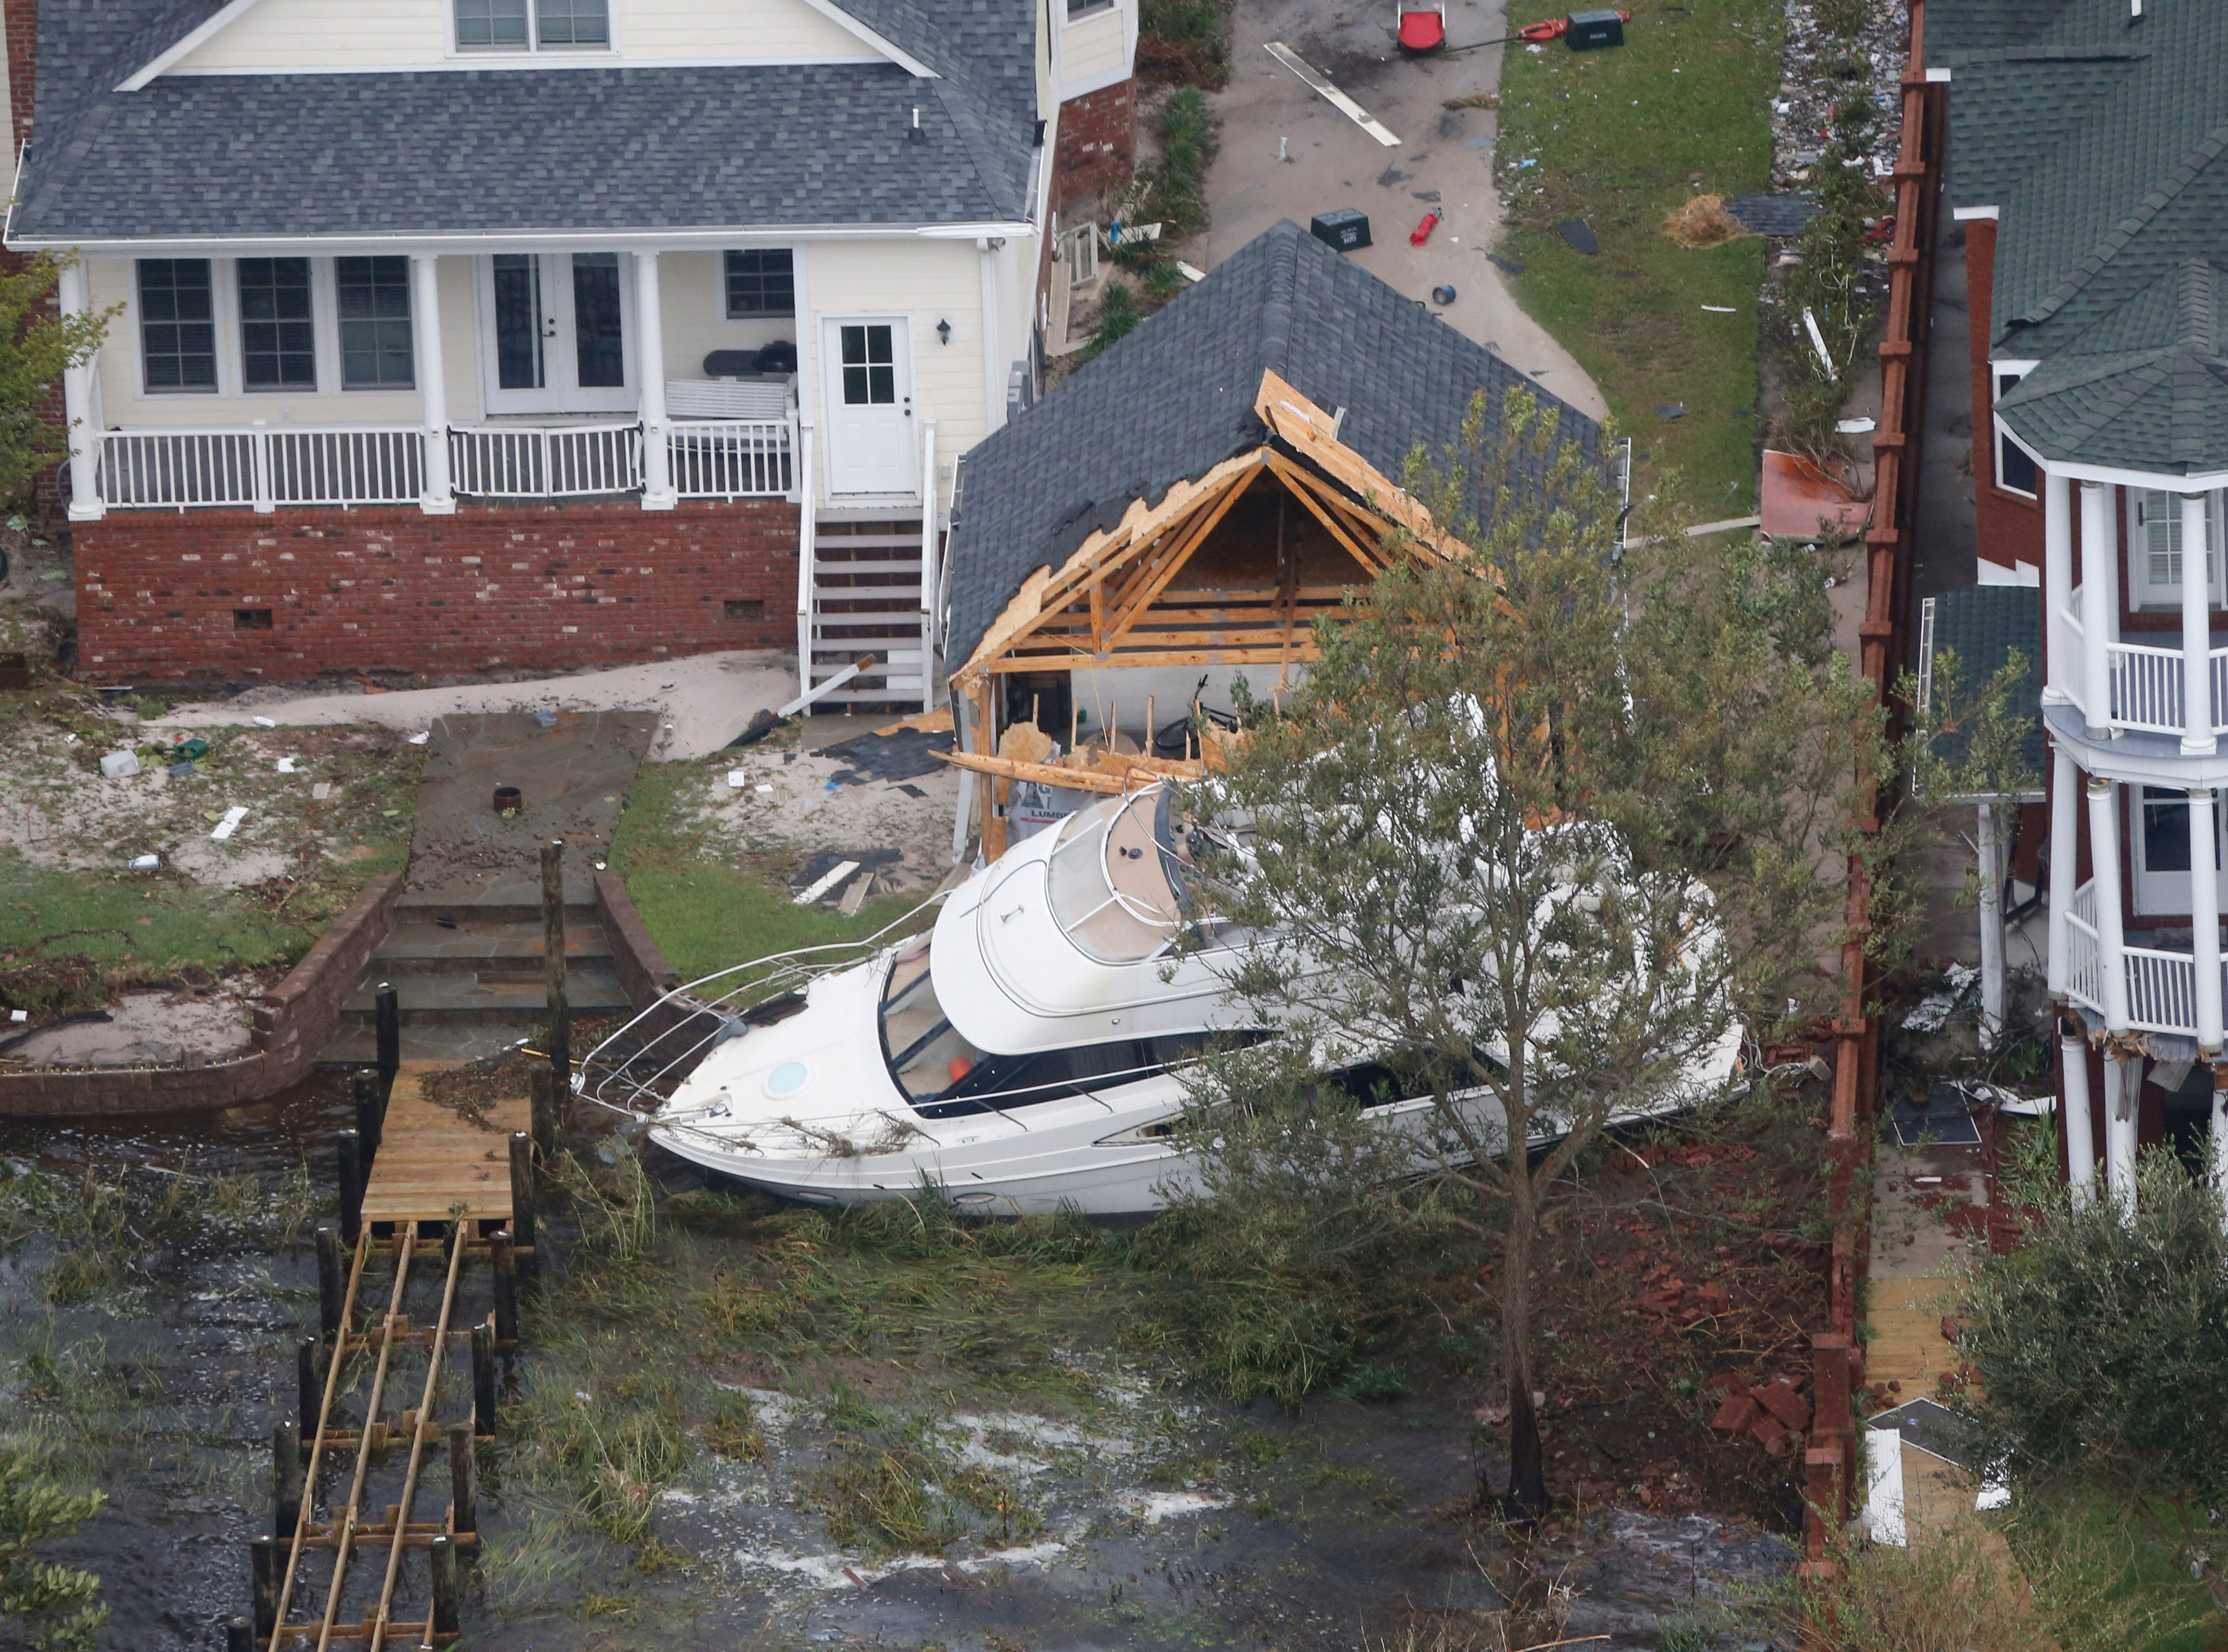 A yacht sits on the Neuse river bank in between buildings after hurricane Florence passed through the area in New Bern, NC., Saturday, Sept. 15, 2018.